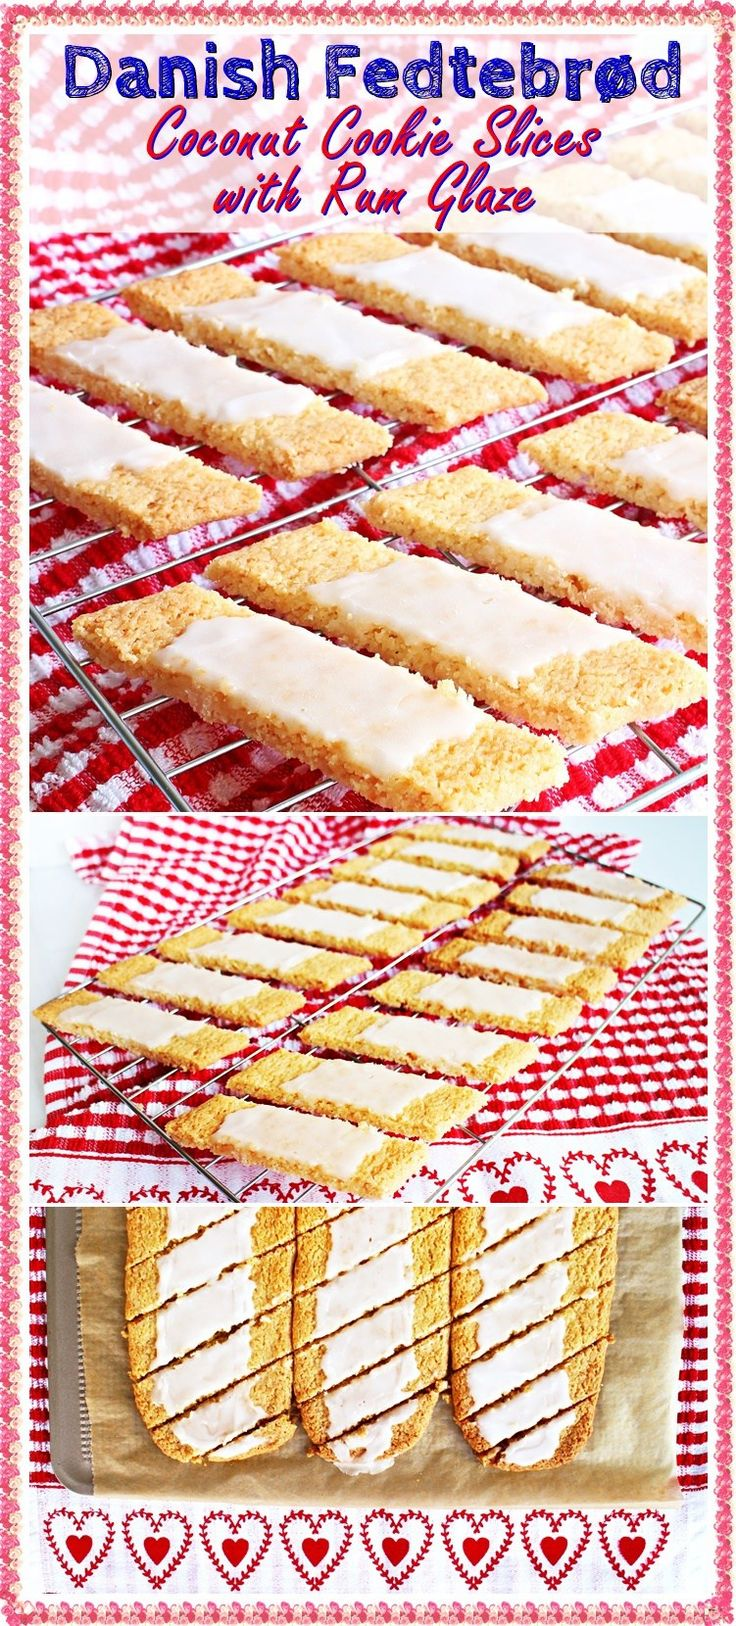 616 best danish food images on pinterest danish pastries danish danish fedtebrd coconut cookie slices with rum glaze a recipe from my mums childhood forumfinder Images